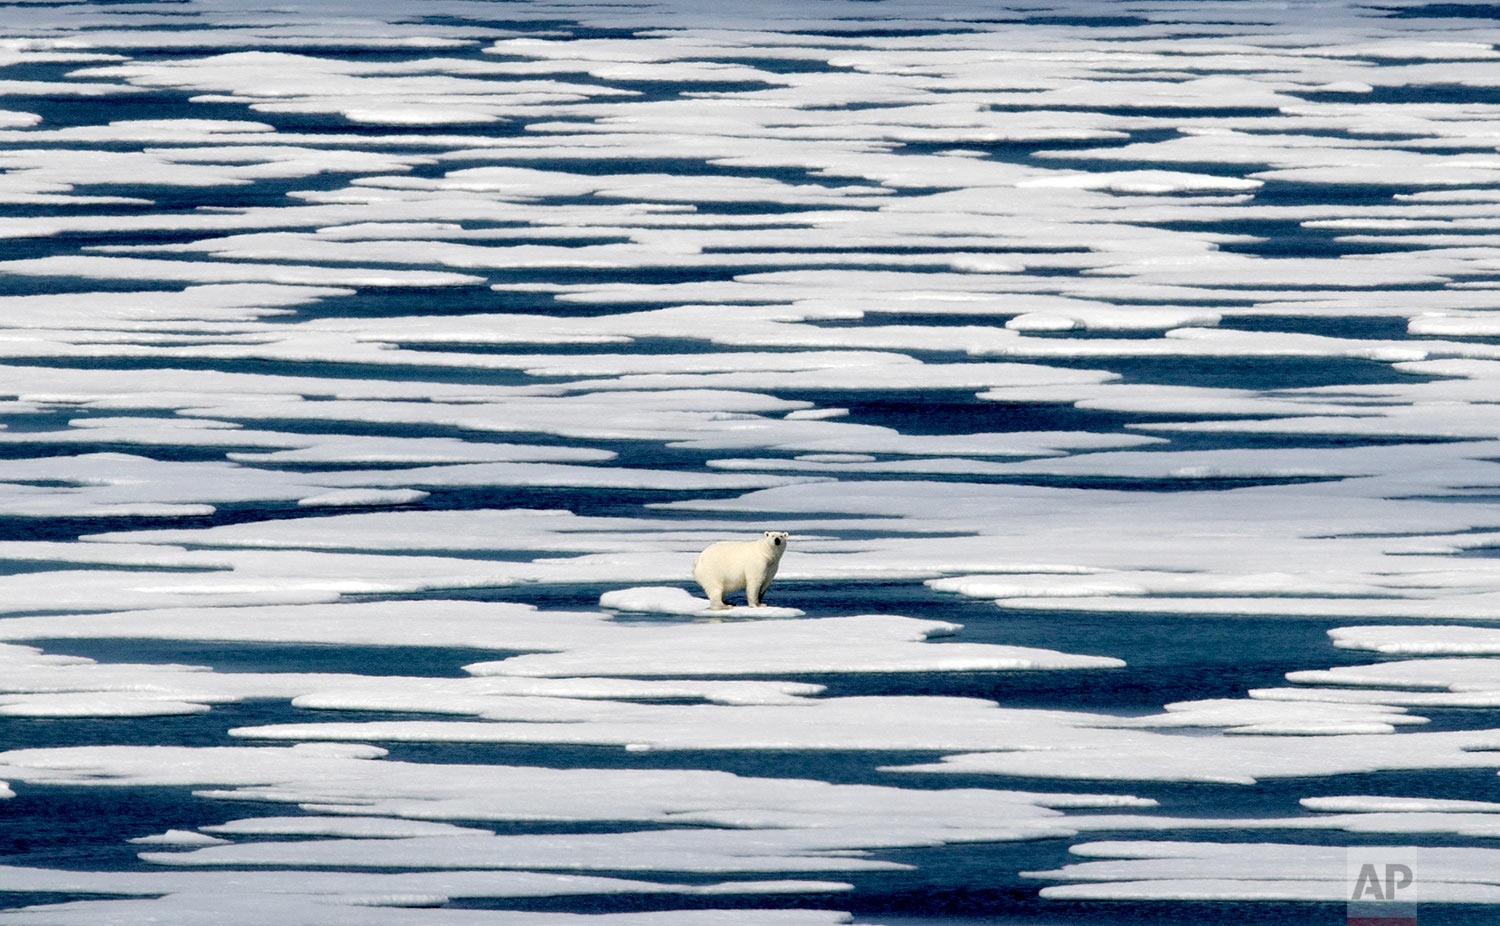 A polar bear stands on the ice in the Franklin Strait in the Canadian Arctic Archipelago, Saturday, July 22, 2017. While some polar bears are expected to follow the retreating ice northward, others will head south, where they will come into greater contact with humans, encounters that are unlikely to end well for the bears. (AP Photo/David Goldman)